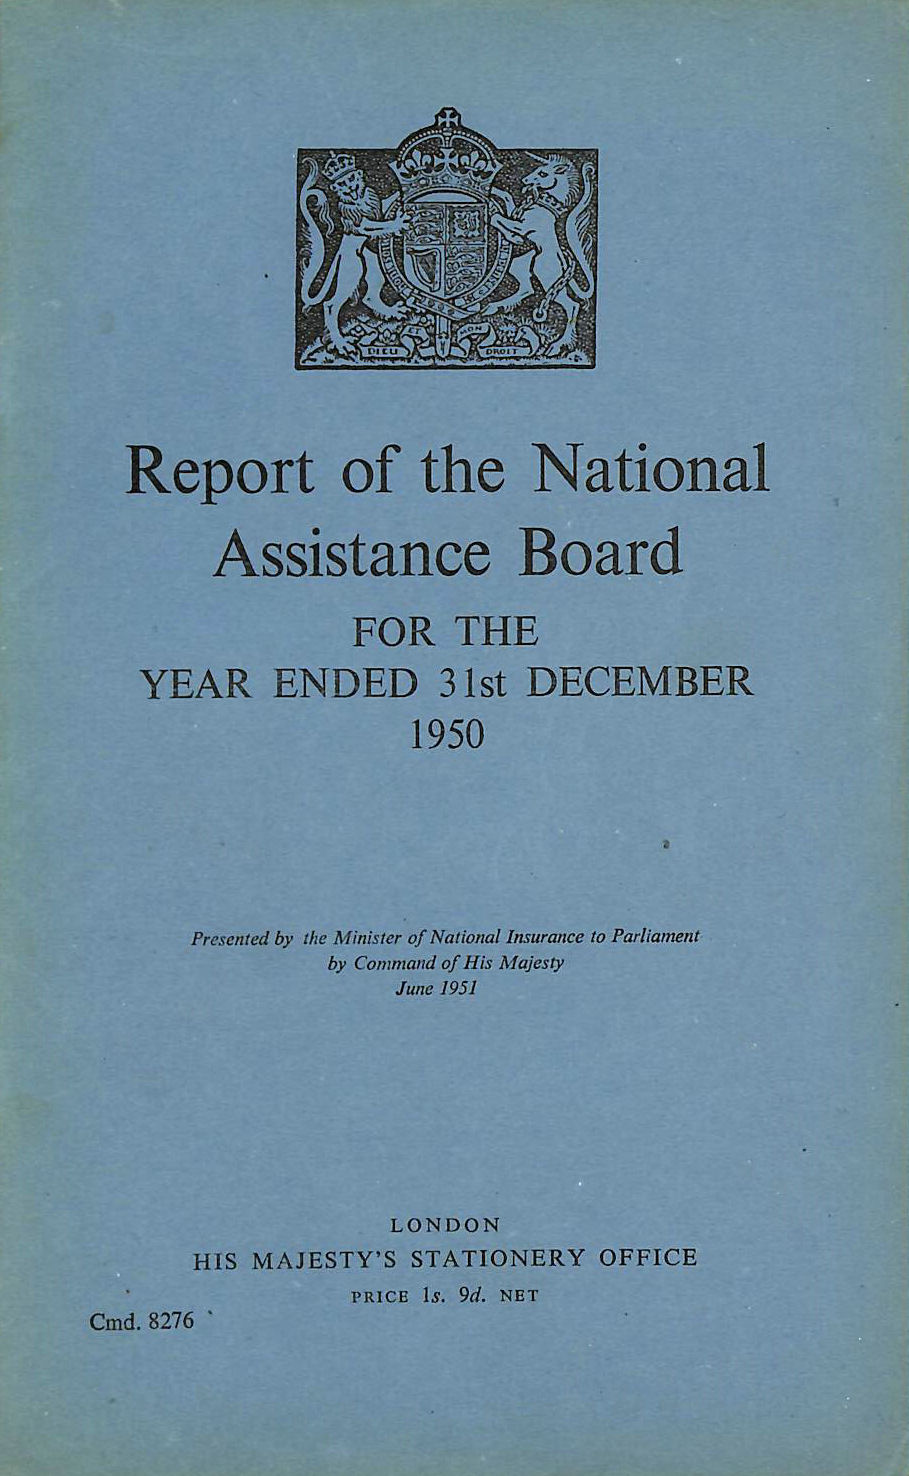 Image for Report of the National Assistance Board 1950